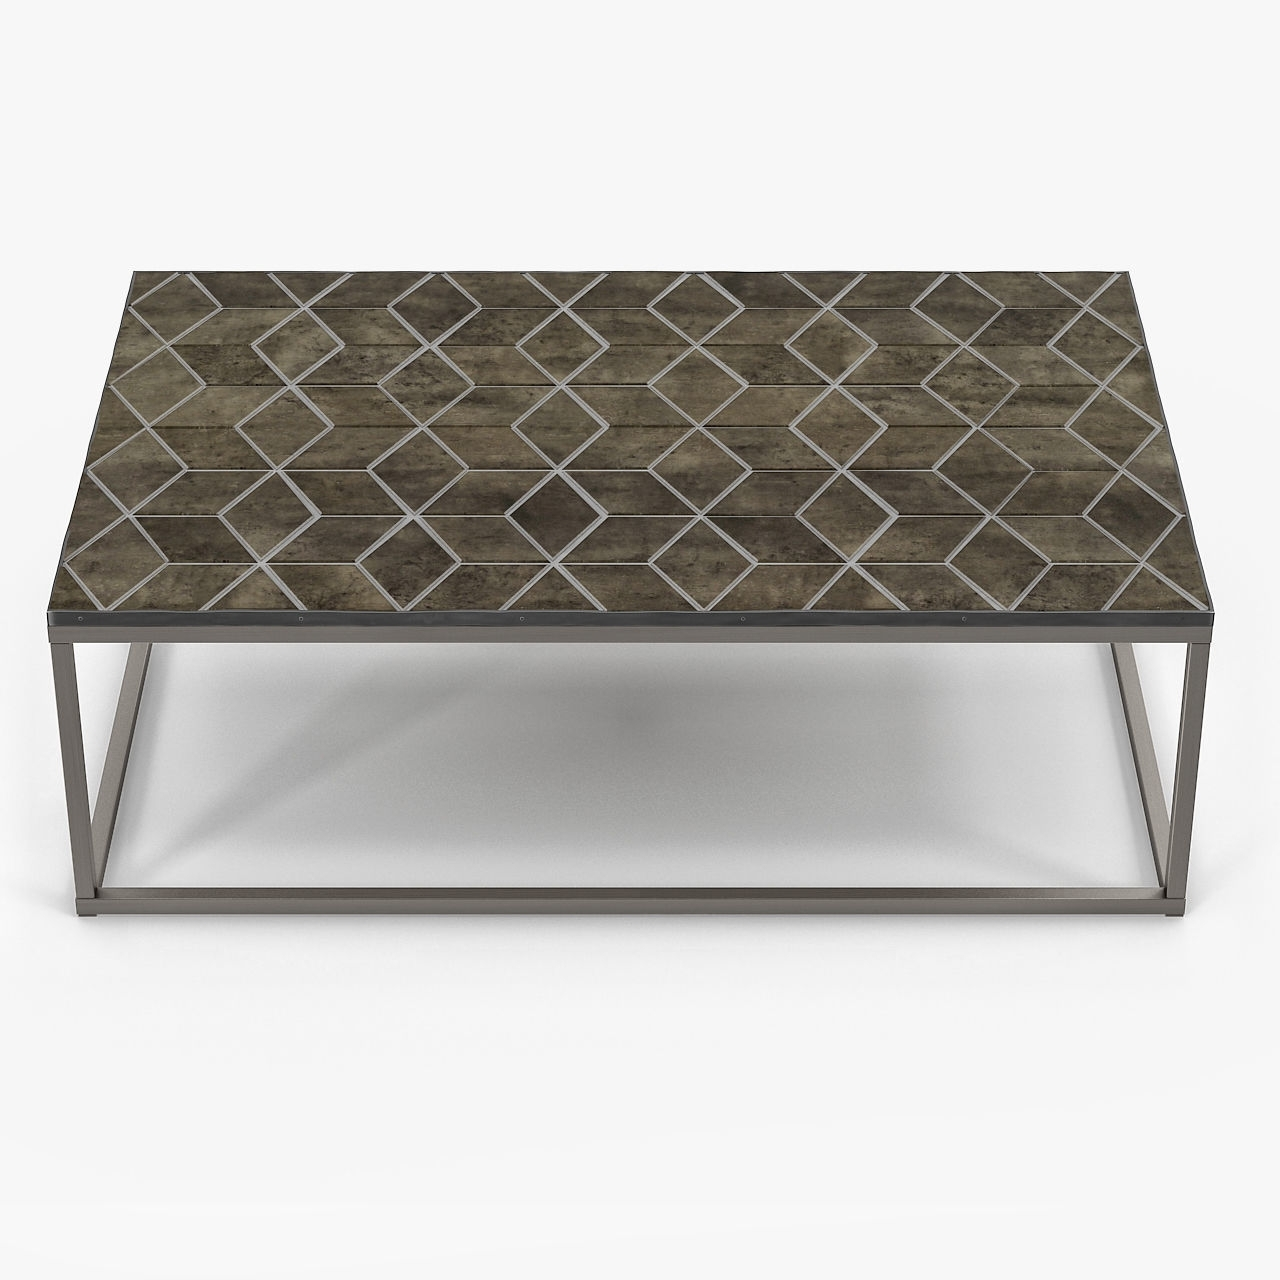 3D Restoration Hardware Metall Parquet Coffee Table In Parquet Coffee Tables (Photo 19 of 30)